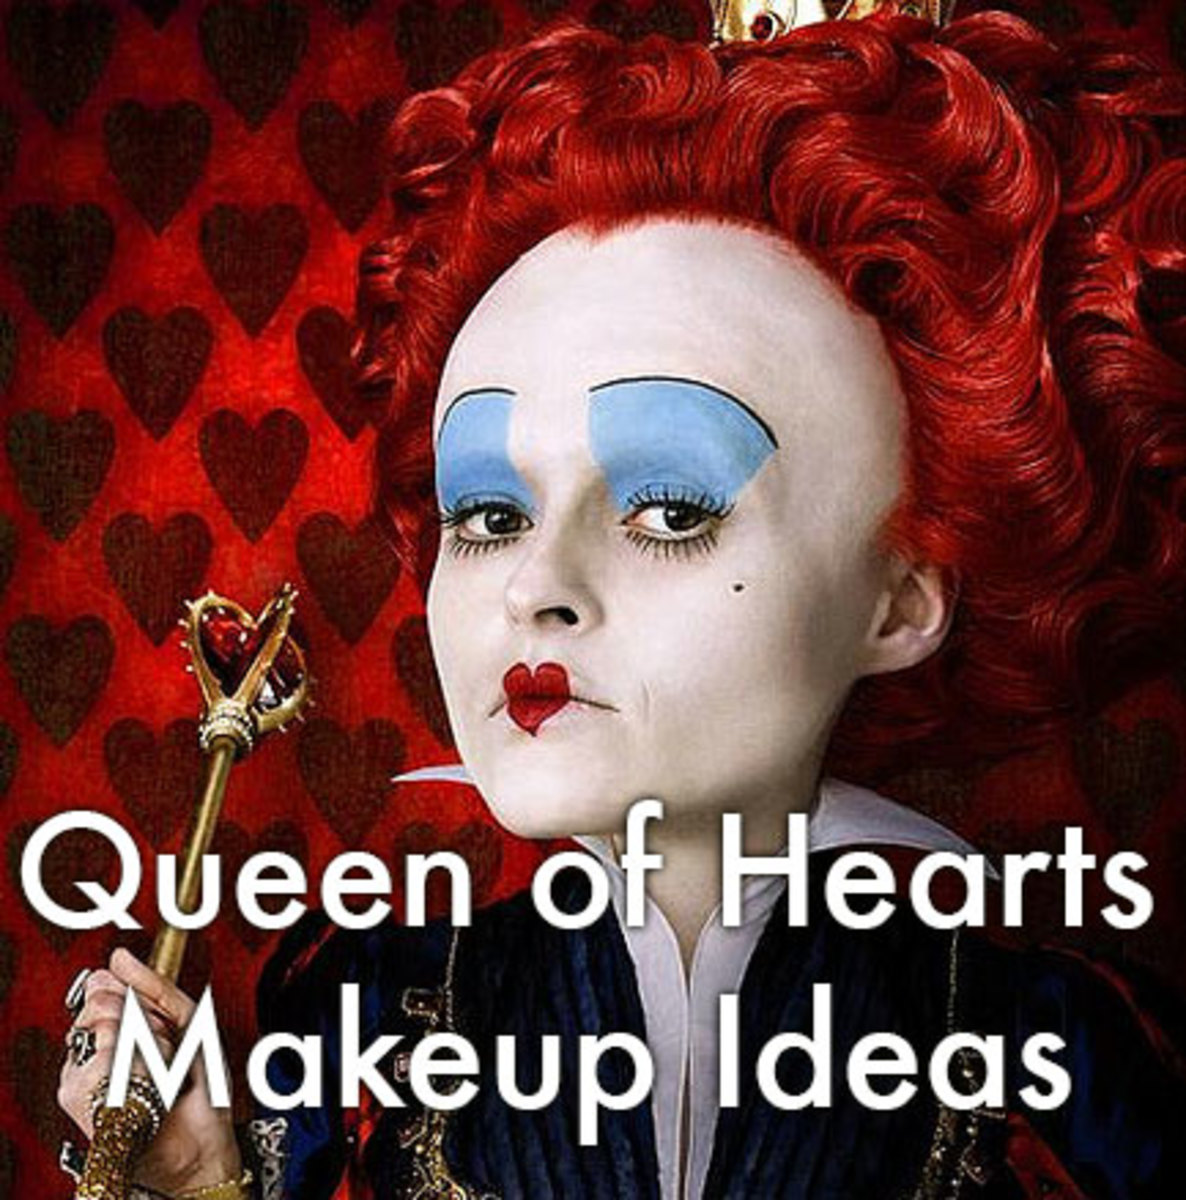 Queen of Hearts Makeup Ideas and Tutorials